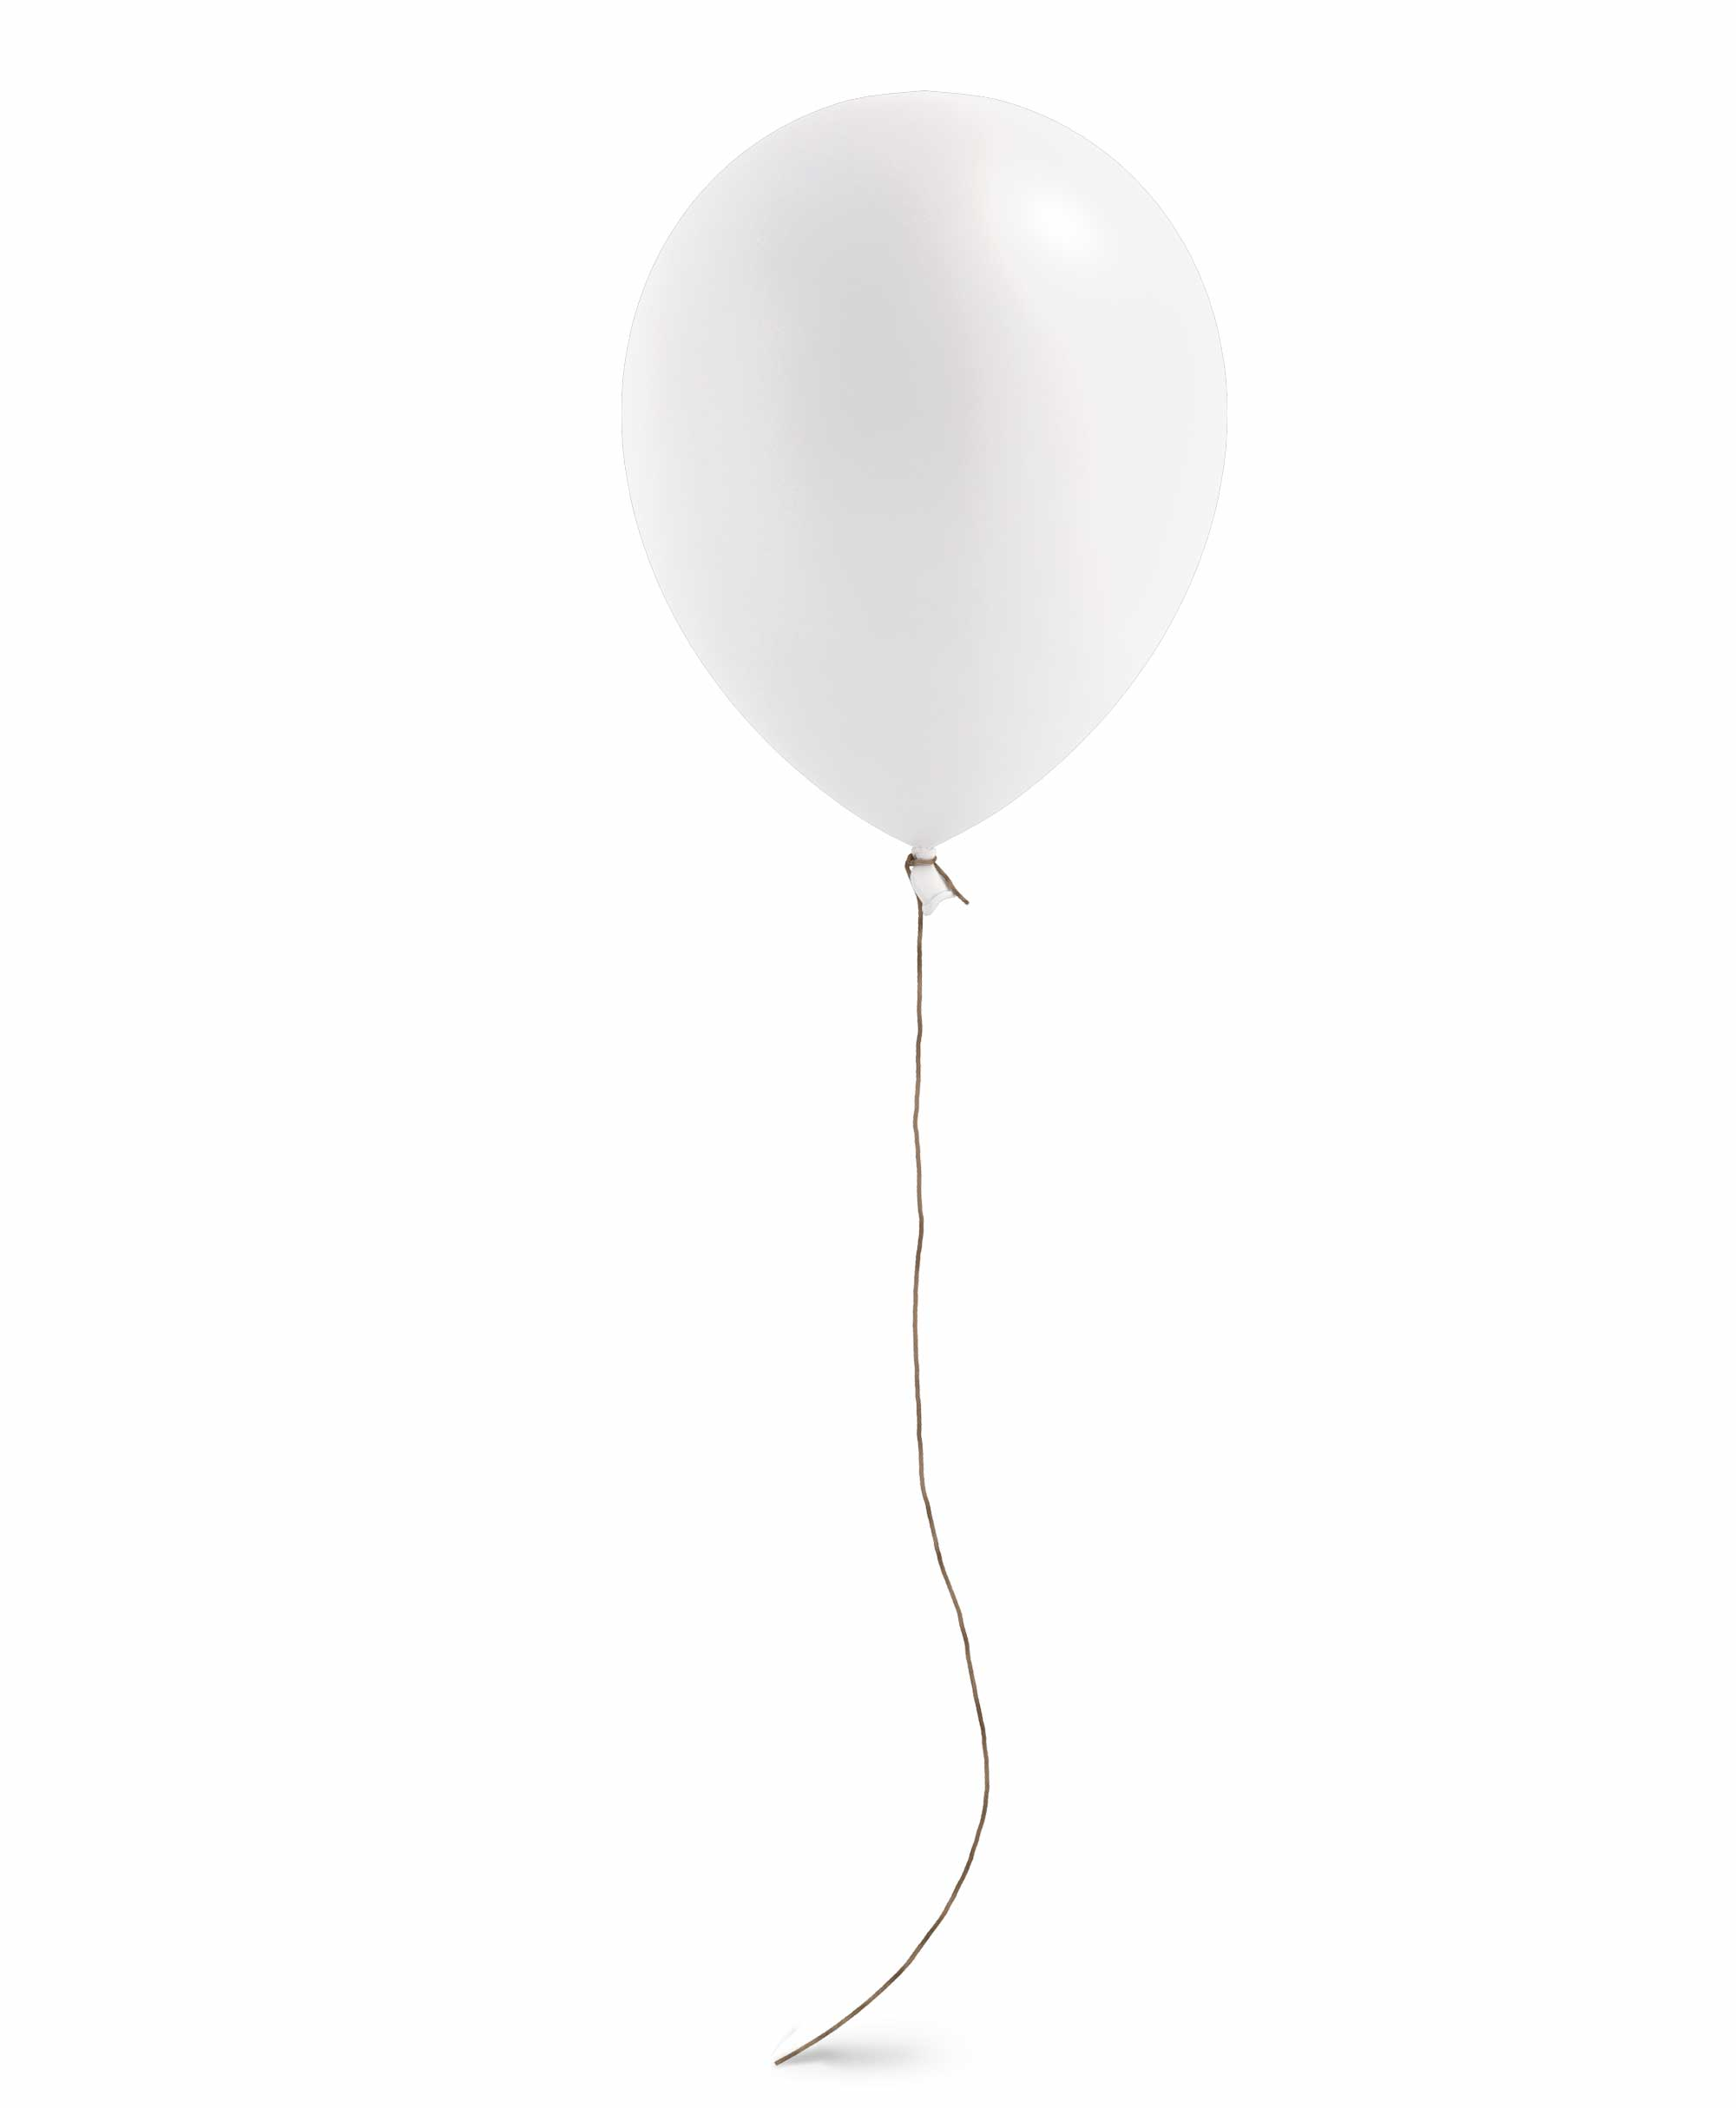 "White balloon 11"" - Gum nut Theme"